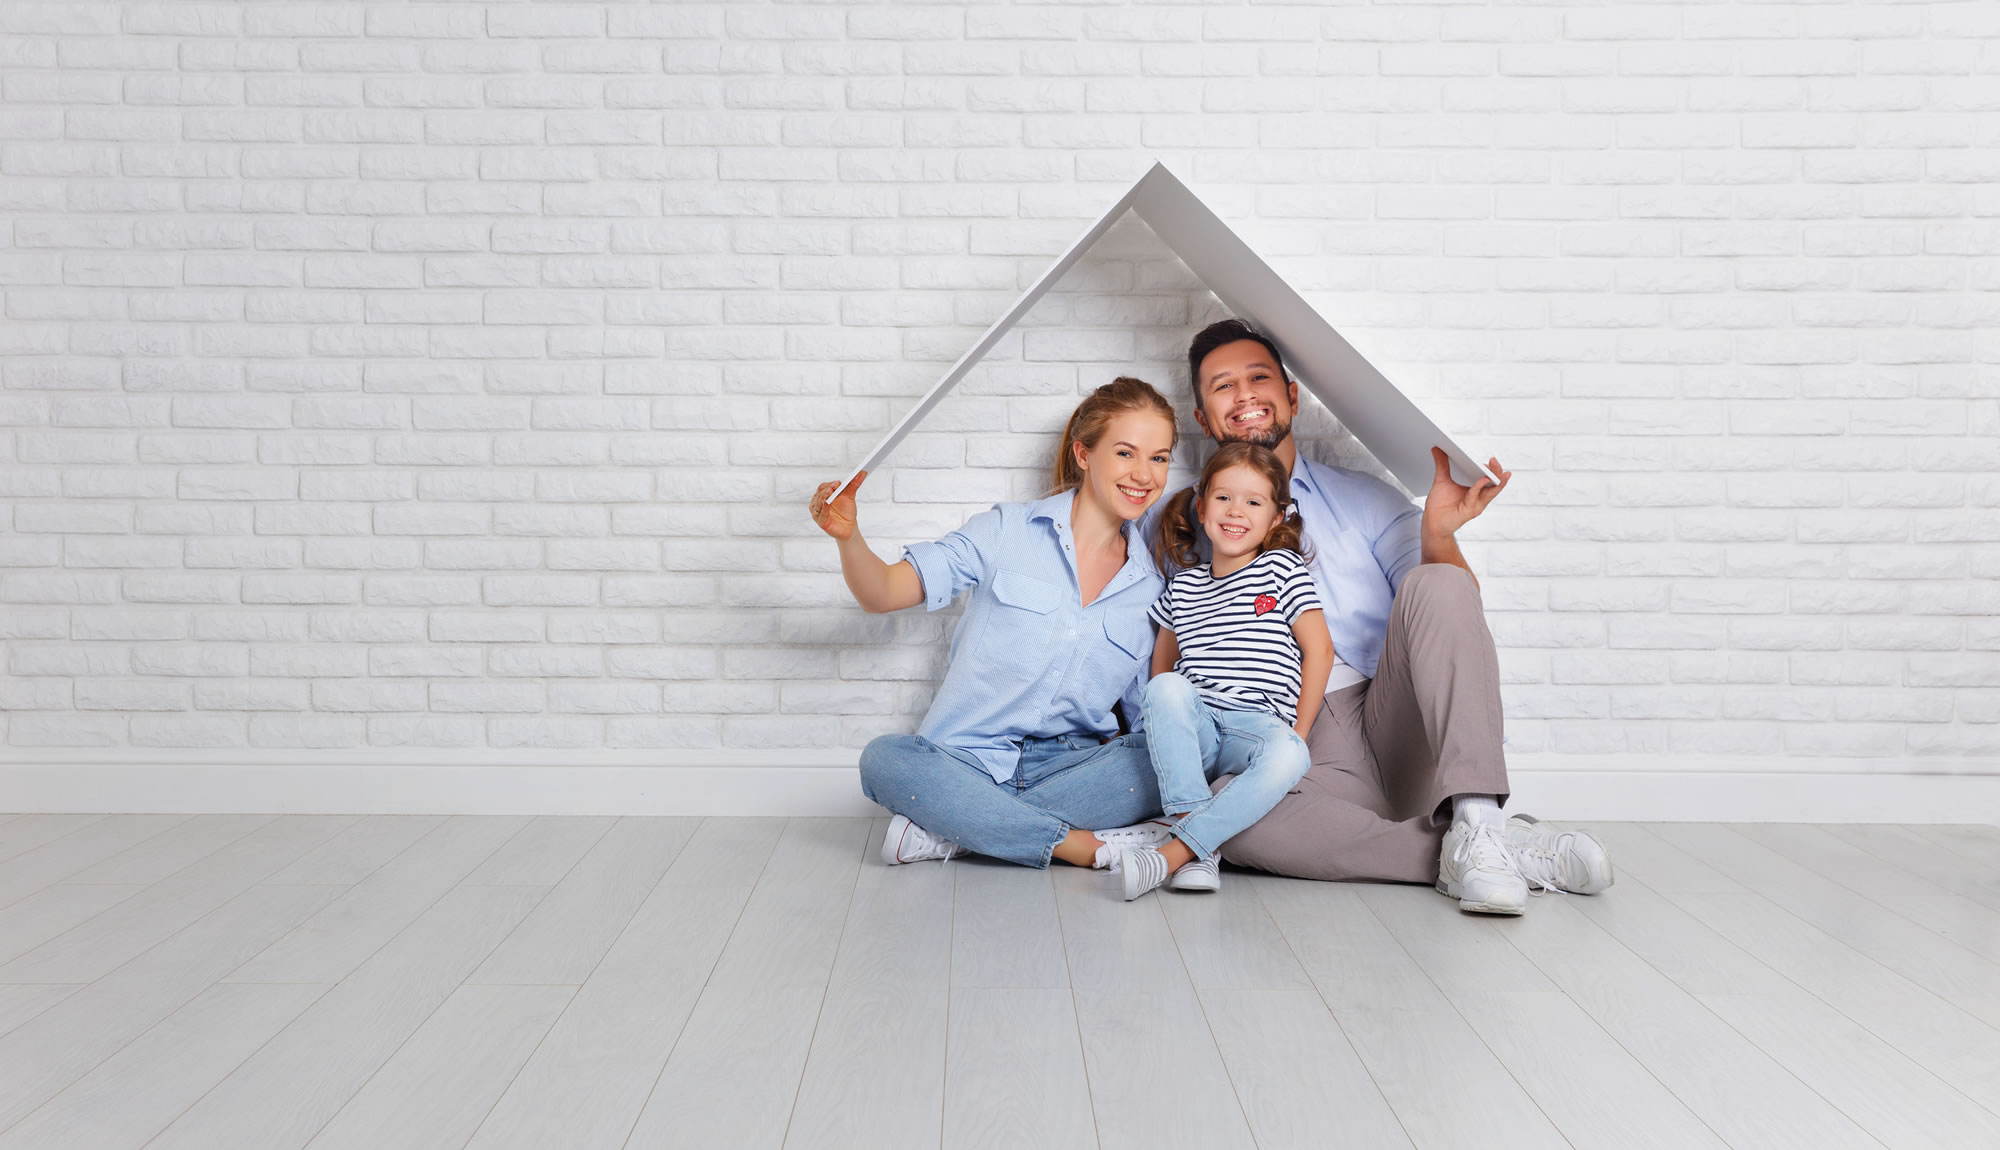 BUILDING-A-NEW-FAMILY-HOME